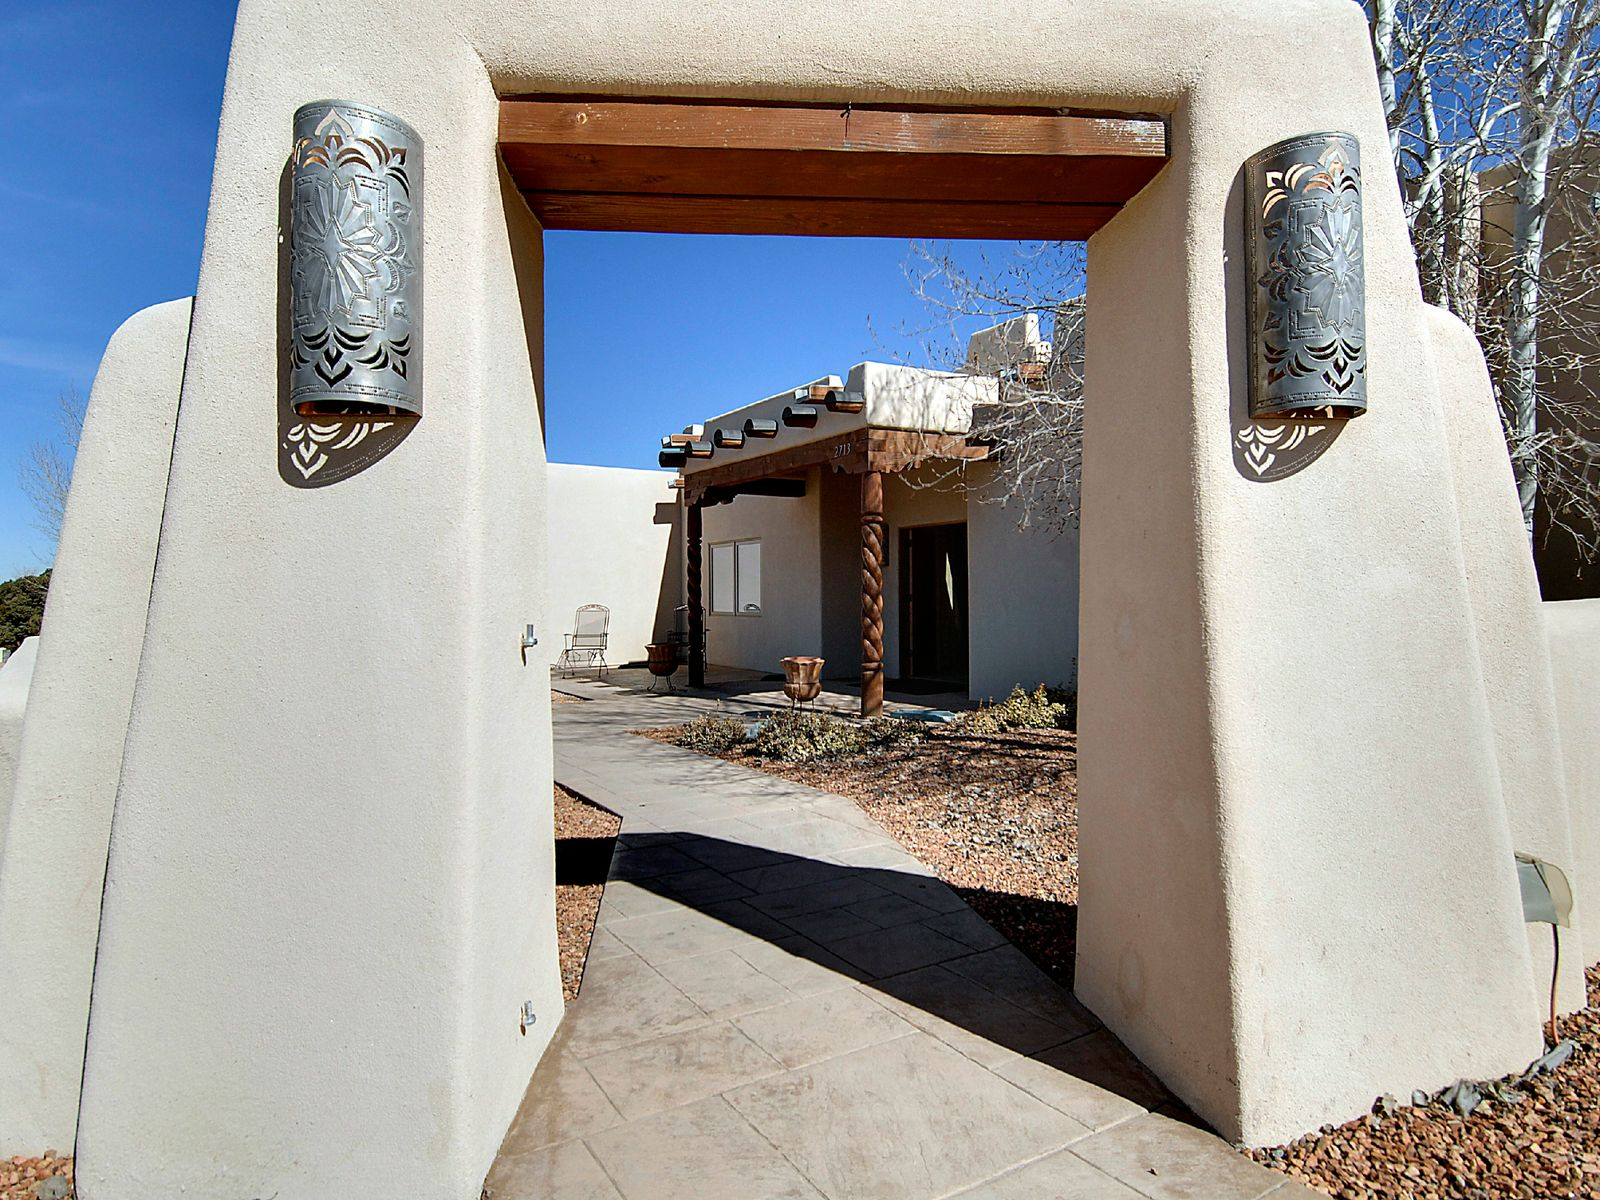 2713 Ventoso, Santa Fe NM Single Family Home - Santa Fe Real Estate